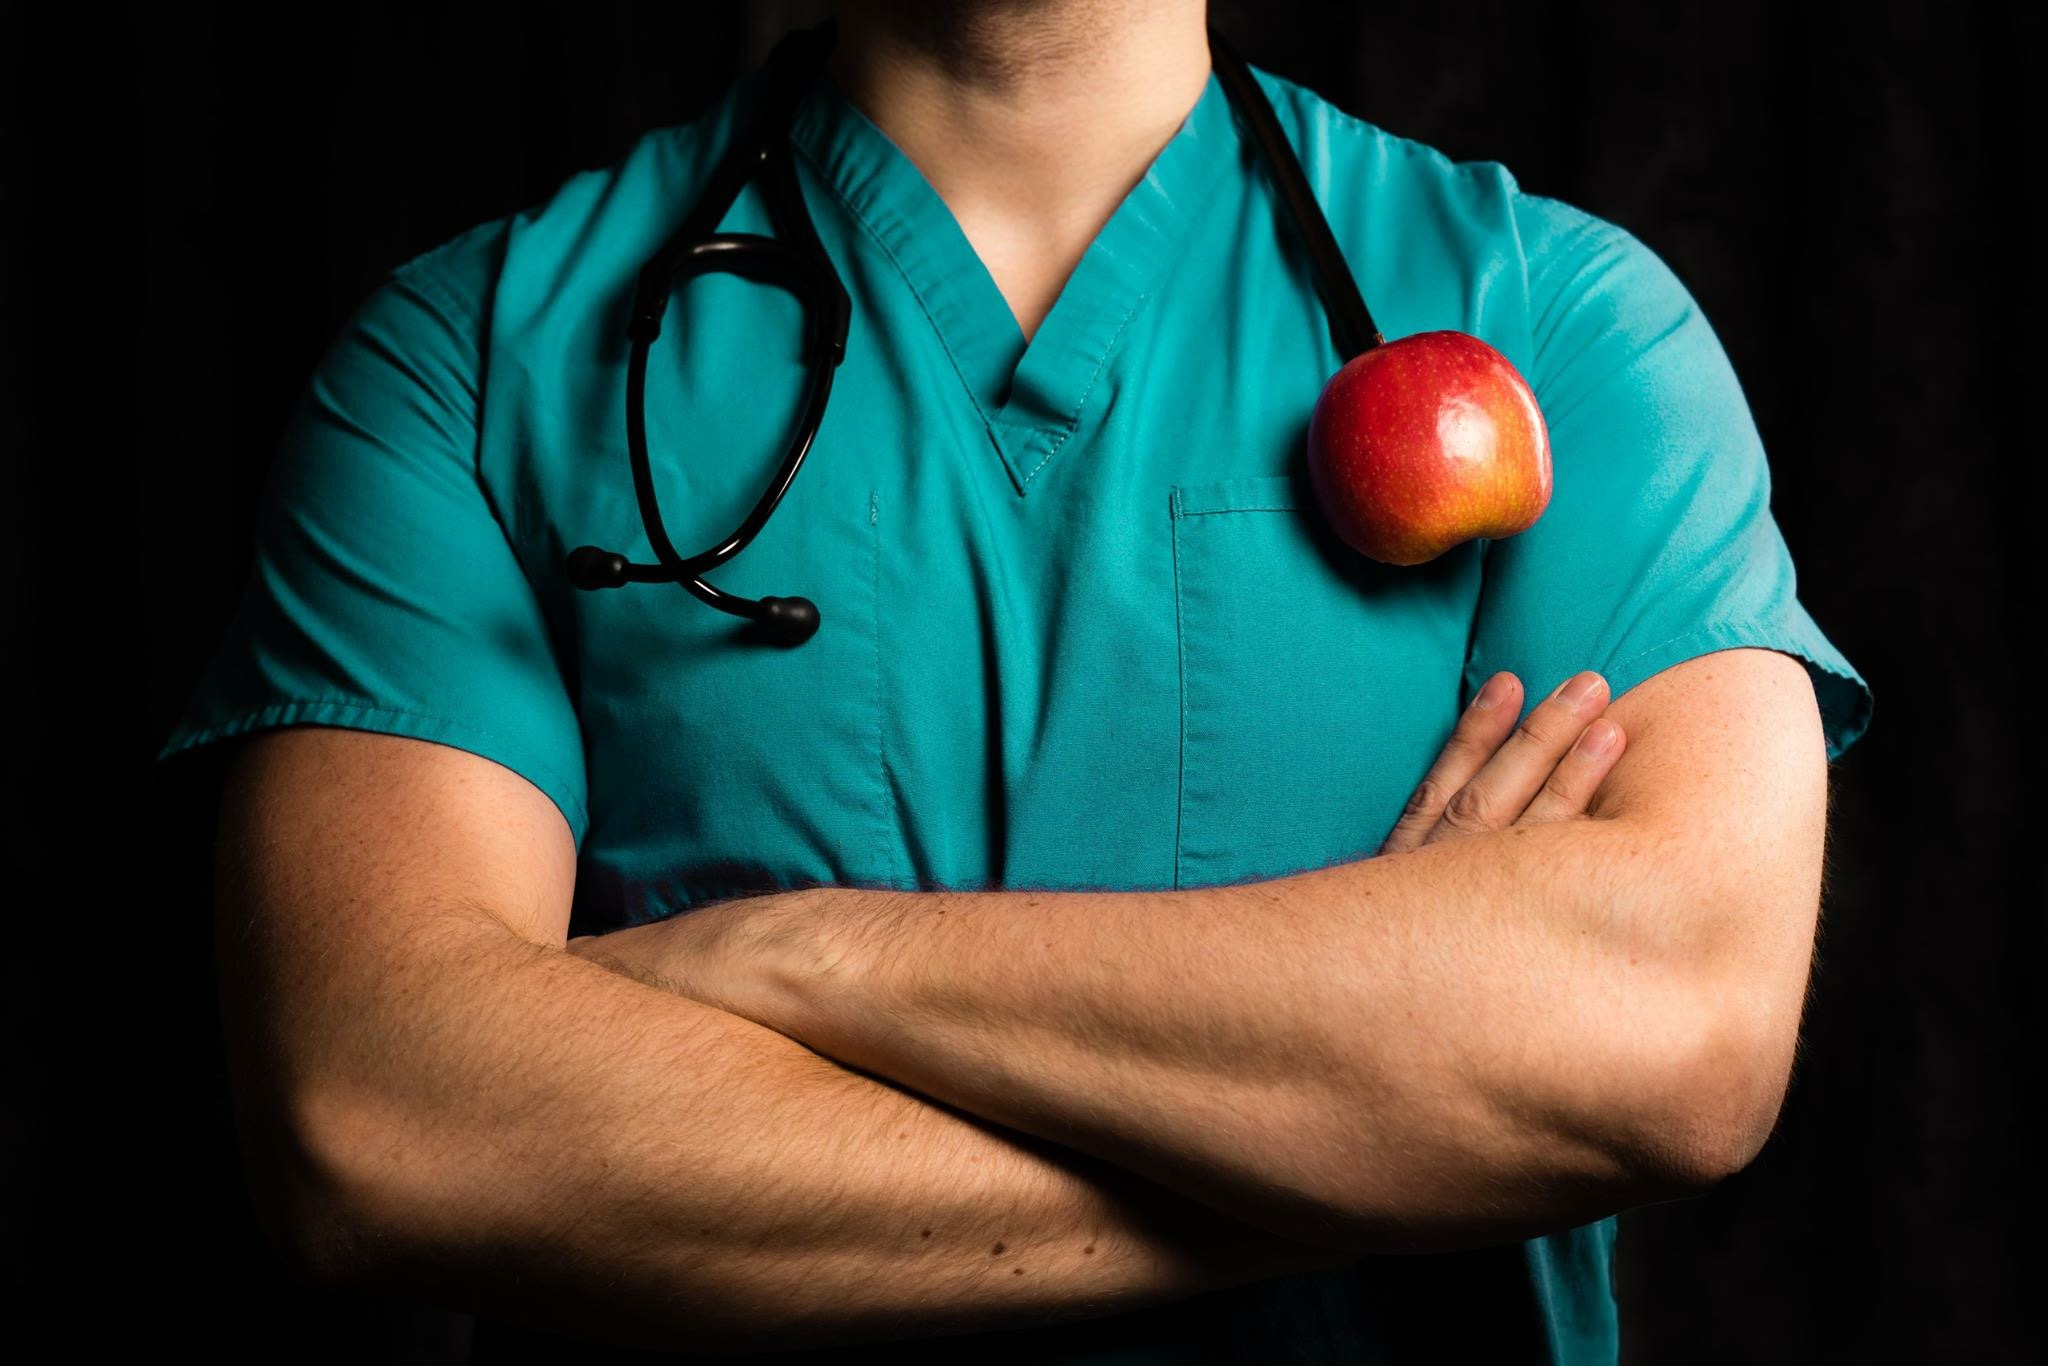 'Keeps the Doctor Away'  At a time that is seeing an ever-increasing demand on the health service, the message behind the old saying 'an apple a day' may be one of the most useful tools today's doctors have... Preventative medicine is the key.